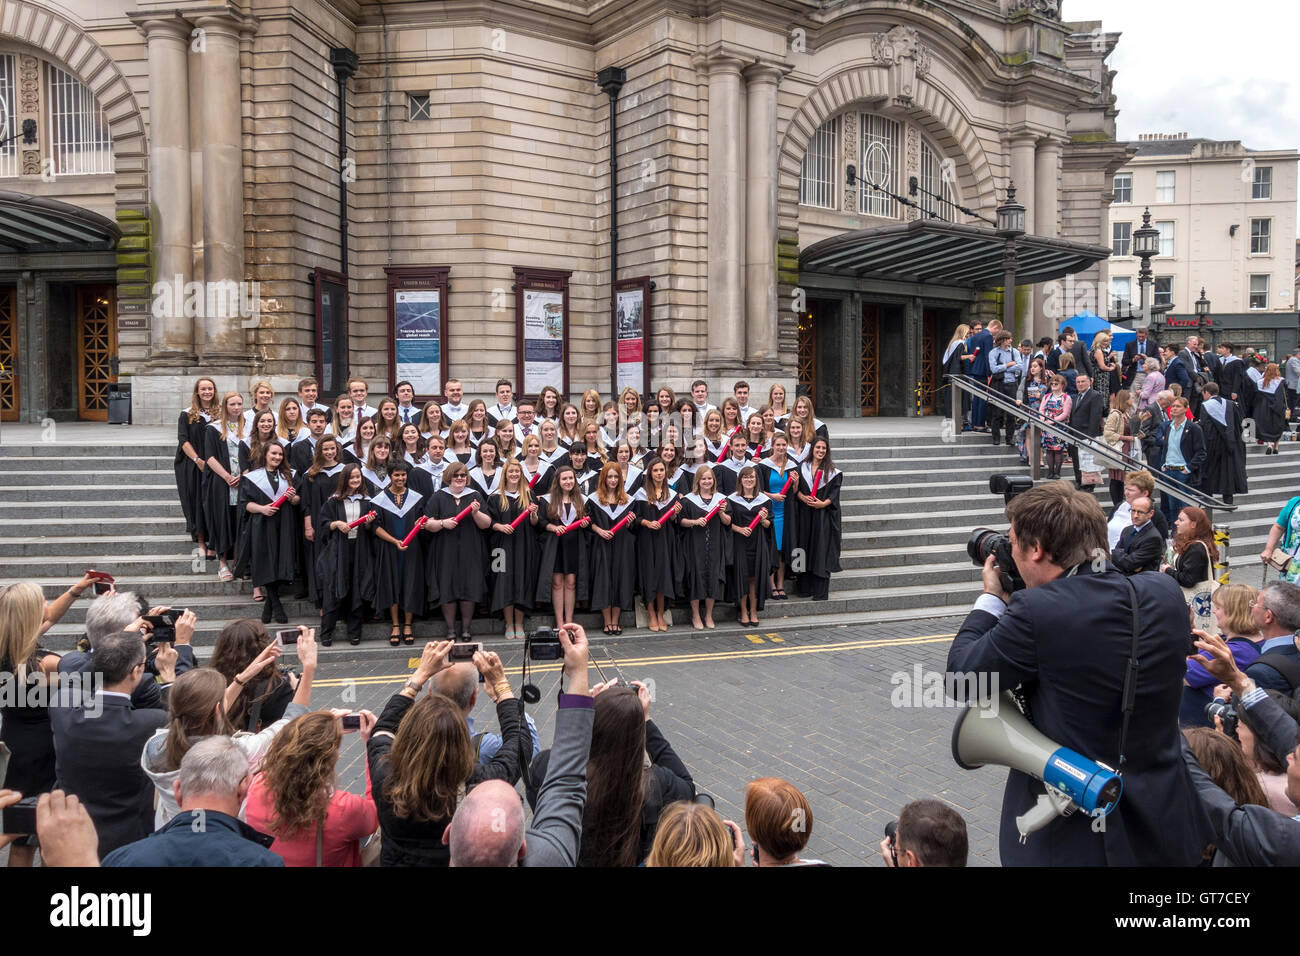 Edinburgh University Graduation Day. Family, parents and official photographer taking pictures of students outside Stock Photo